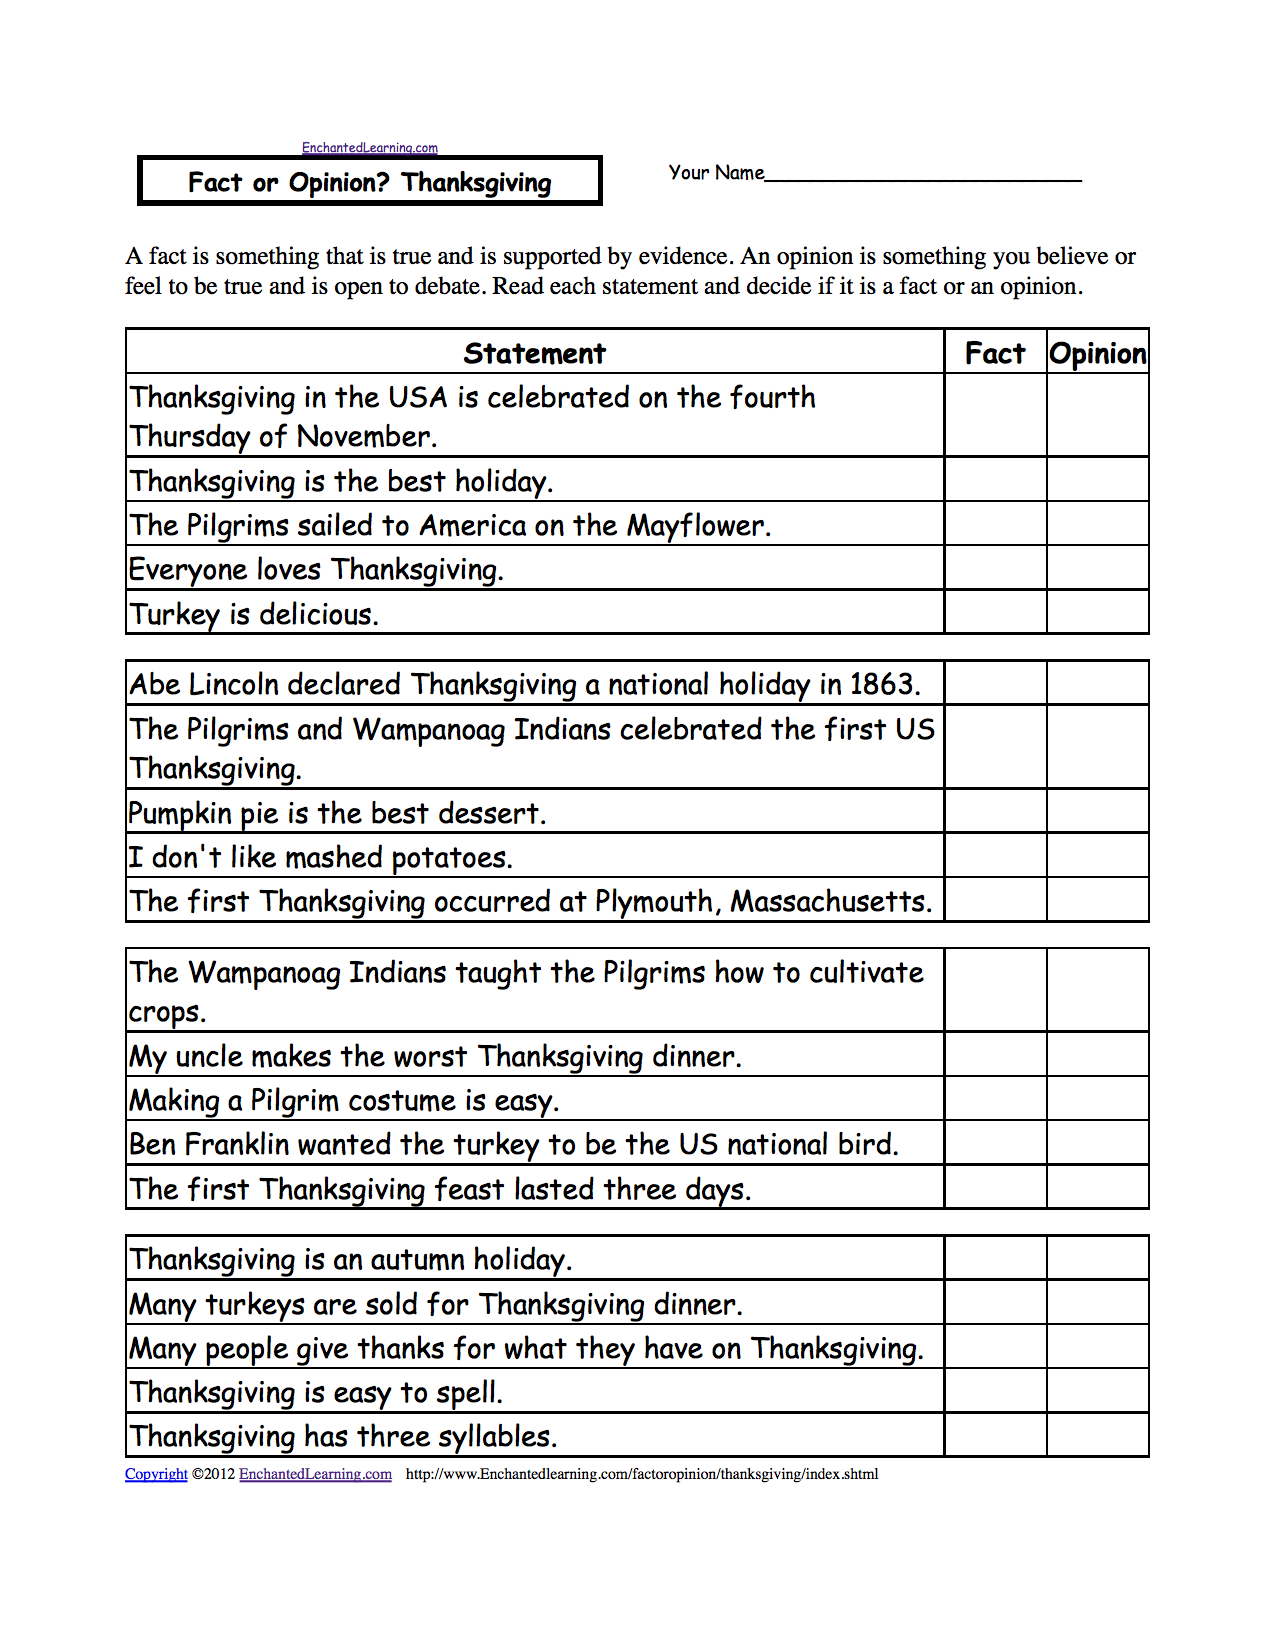 FREE THANKSGIVING RESOURCES Fact and opinion printable